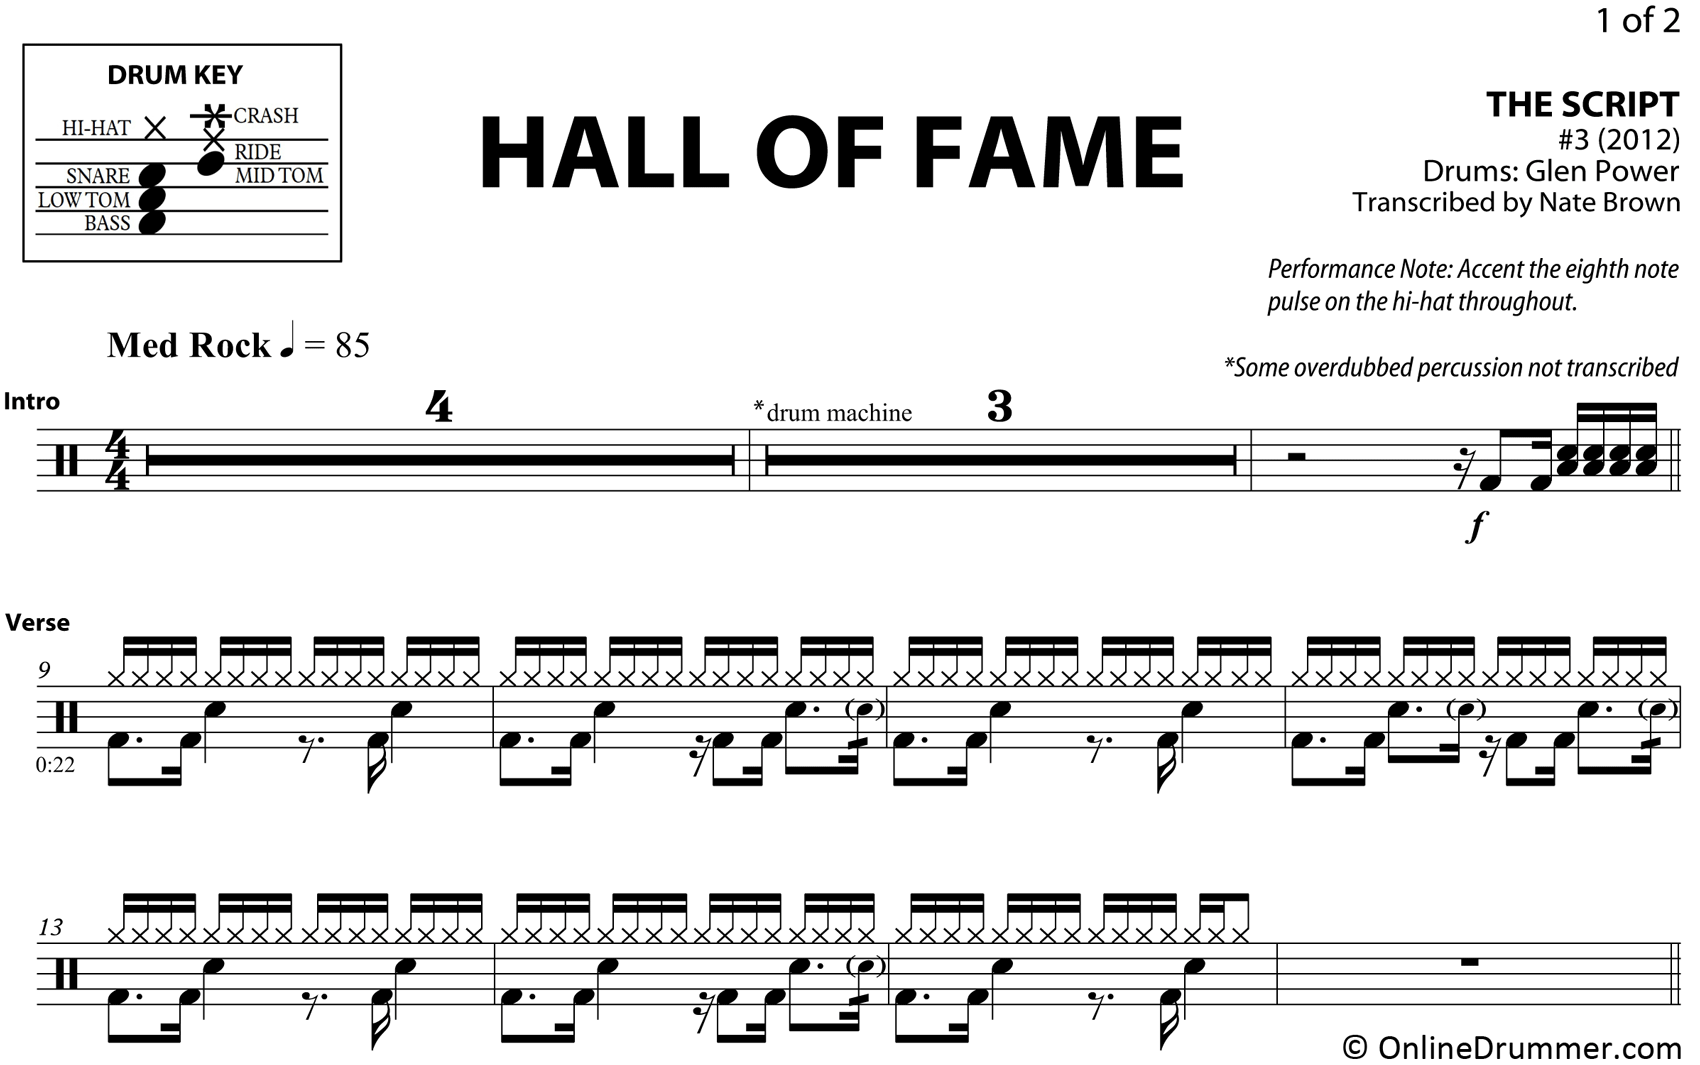 Hall of Fame - The Script - Drum Sheet Music